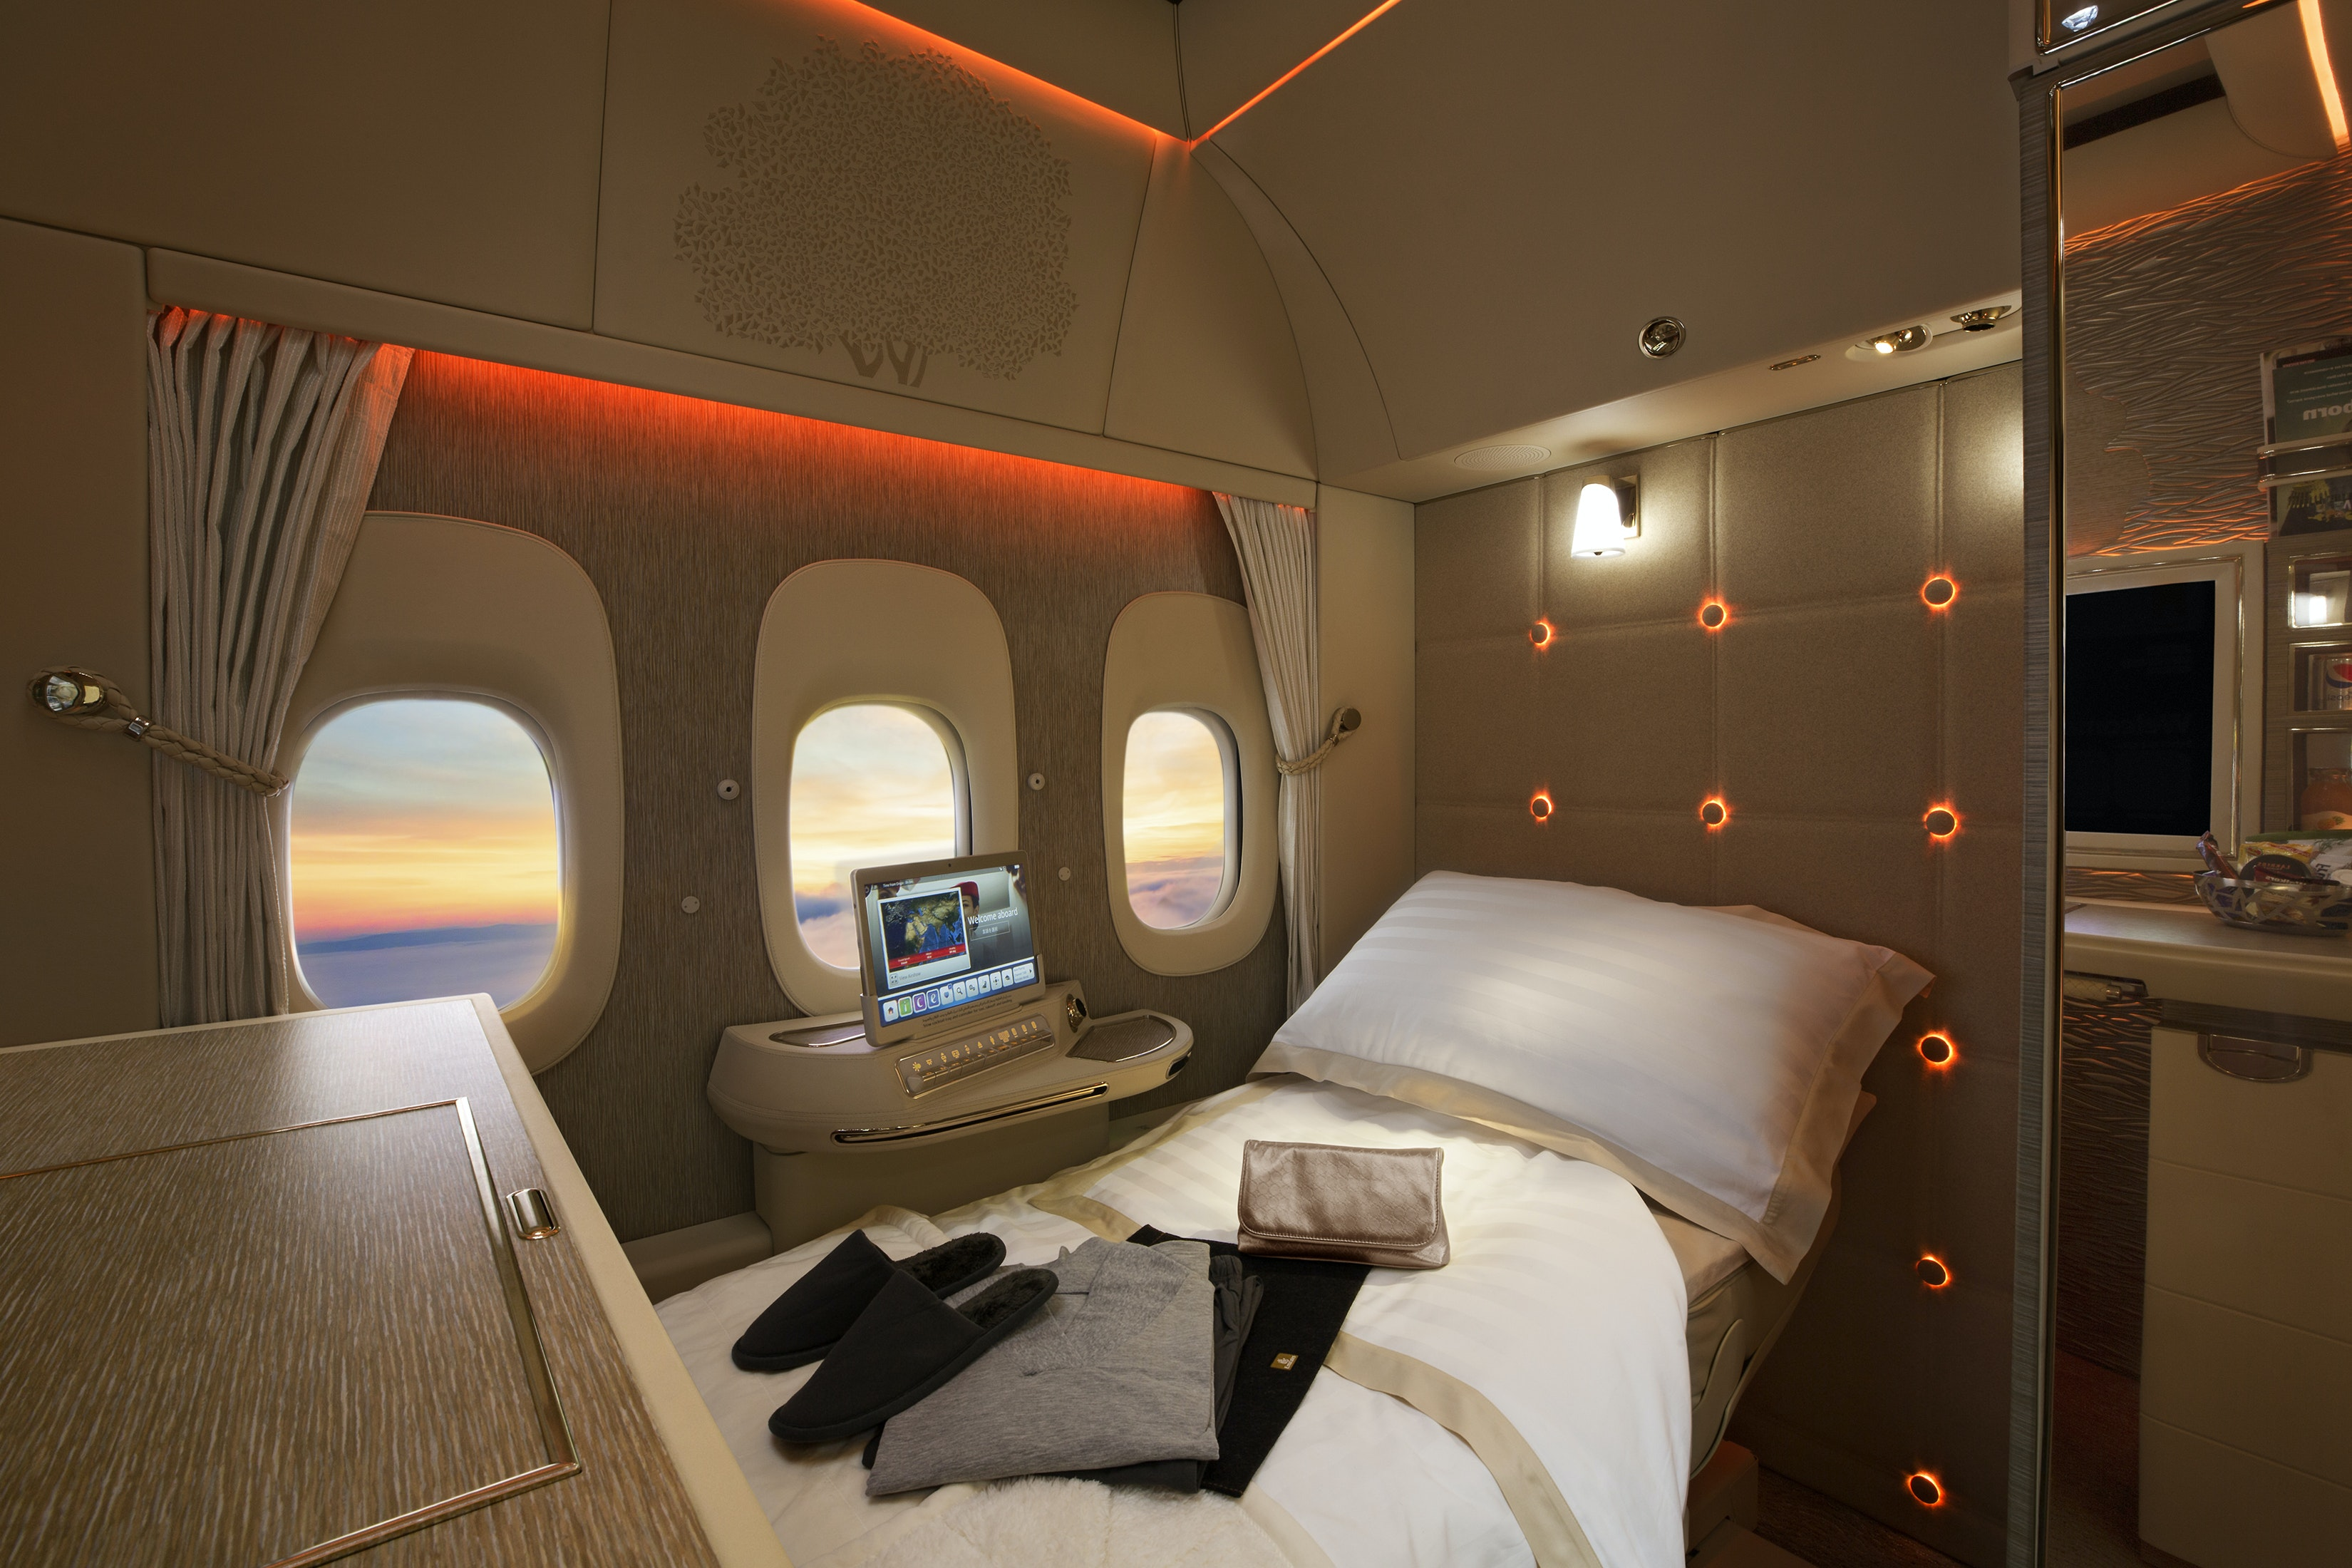 The lie-flat beds in Emirates first class